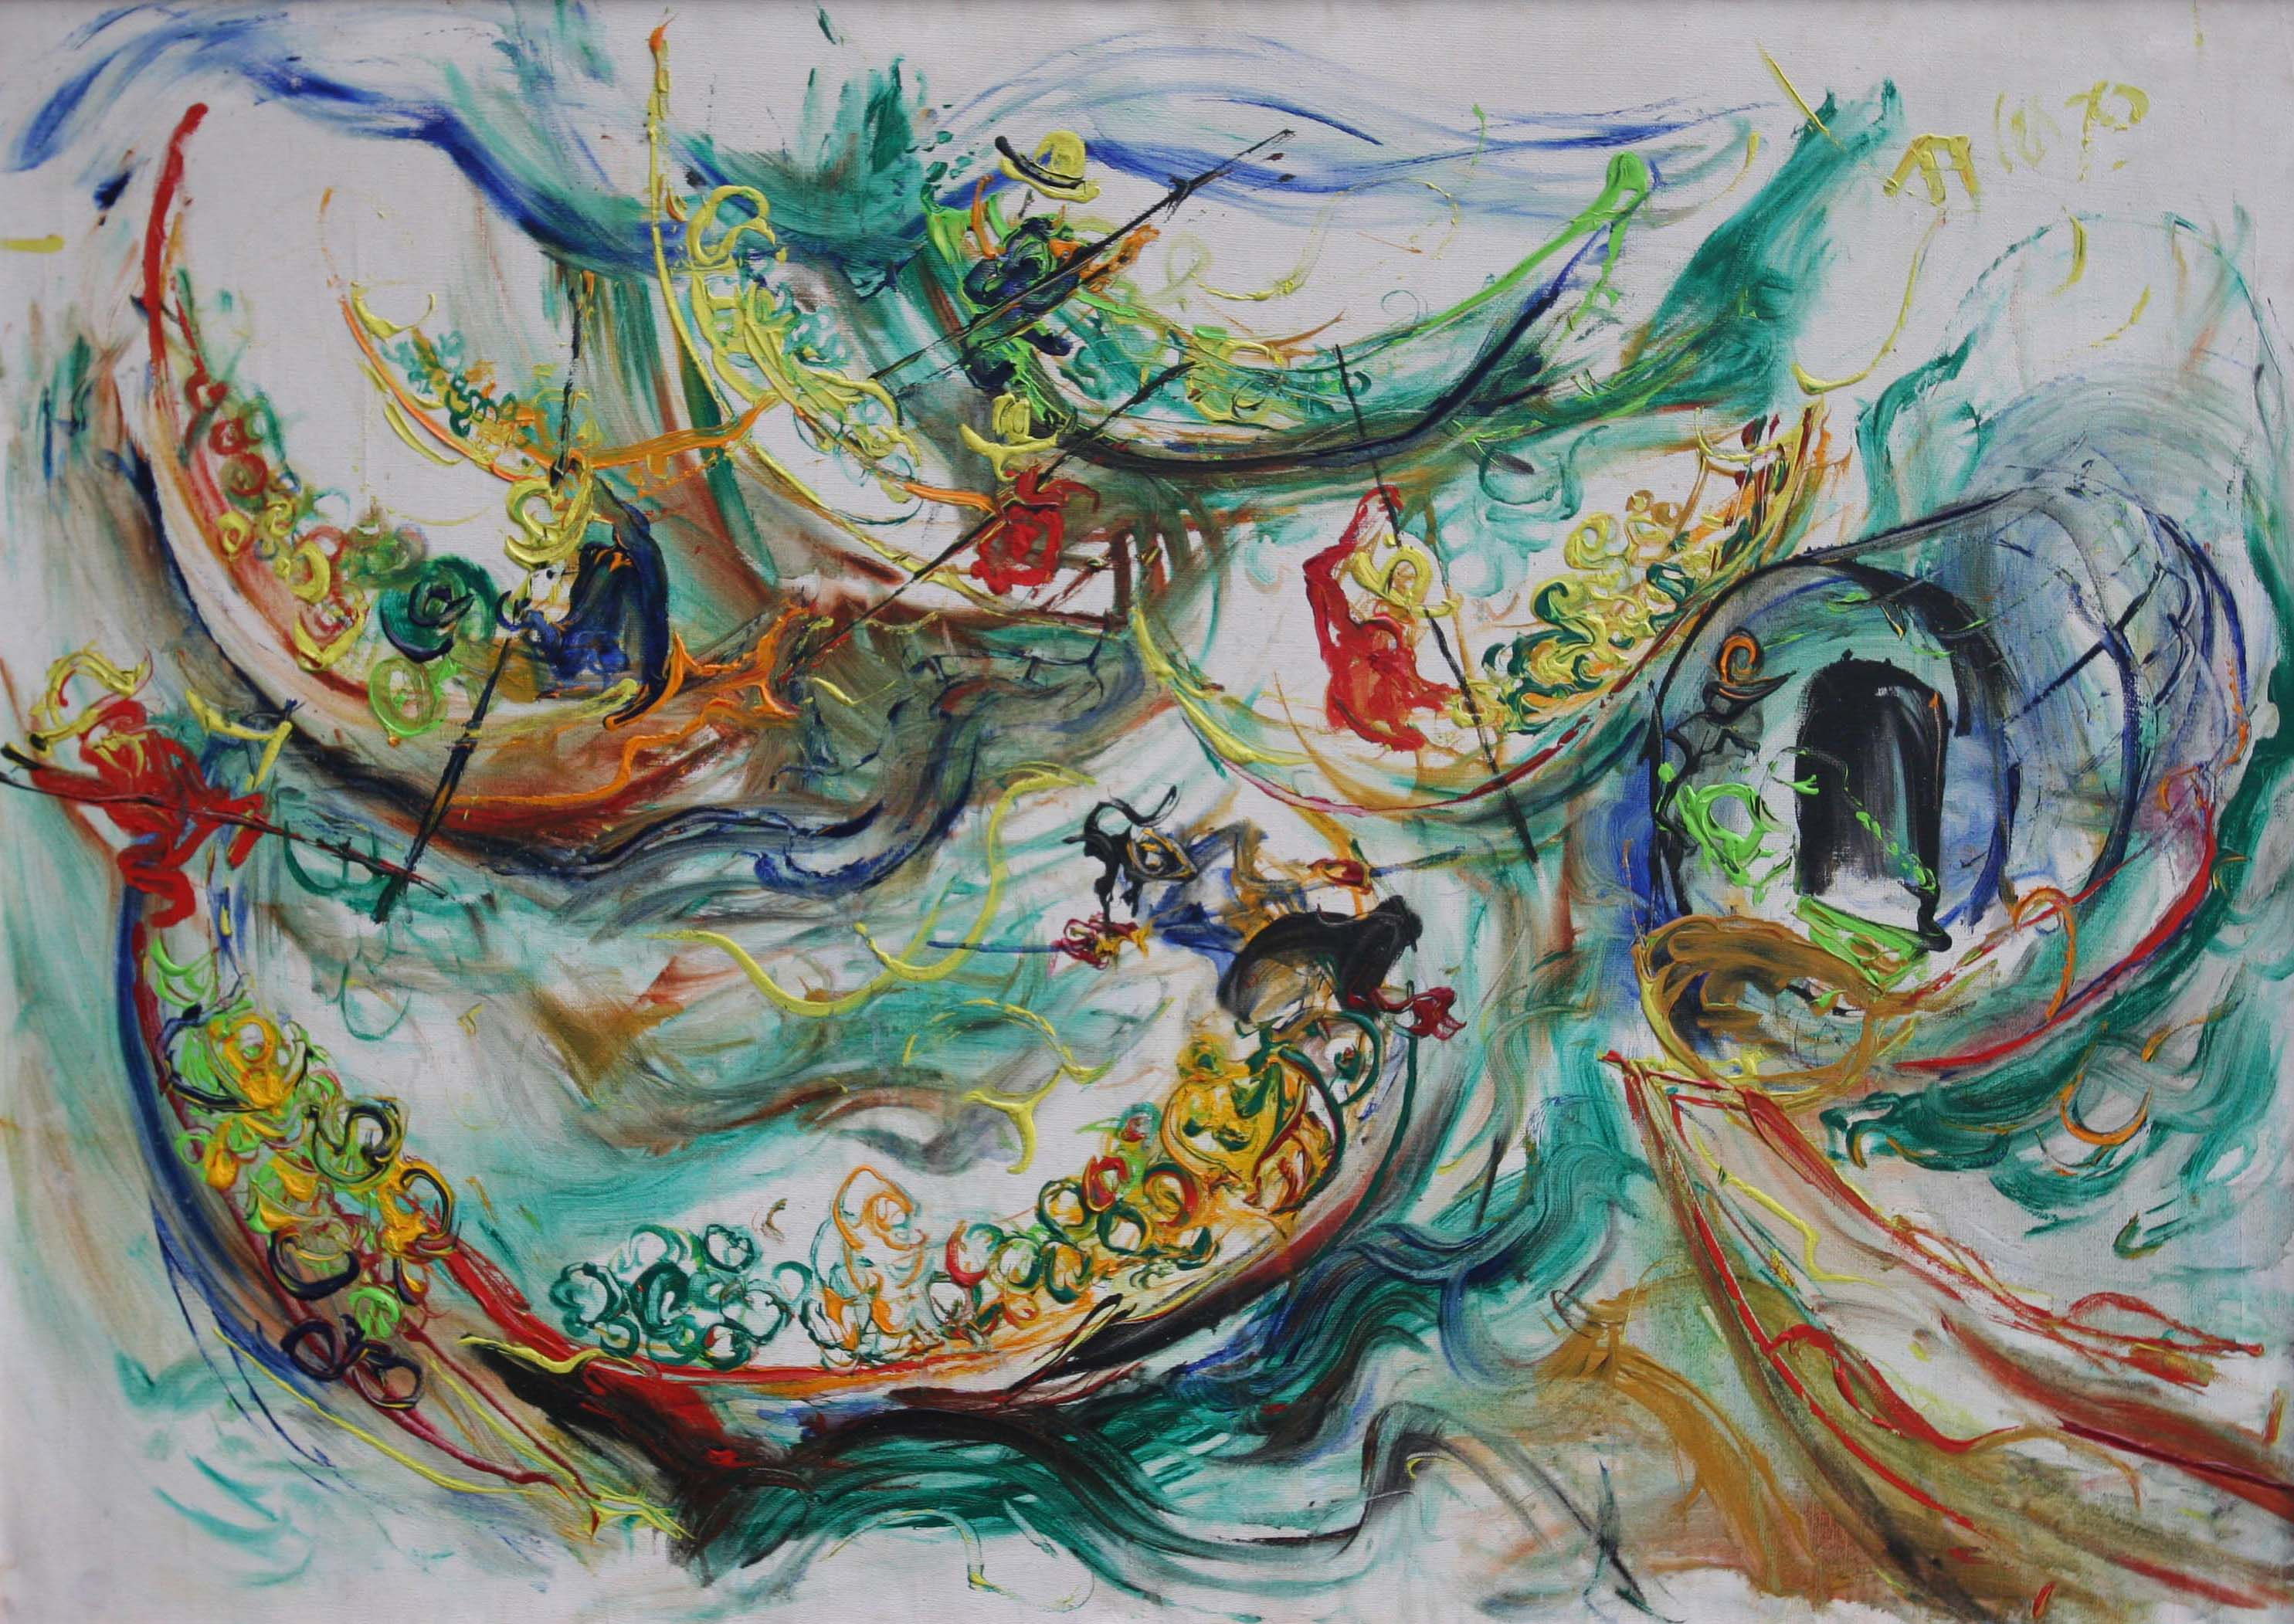 Affandi, The Floating Market in Bangkok, 1970, 90 x 130 cm